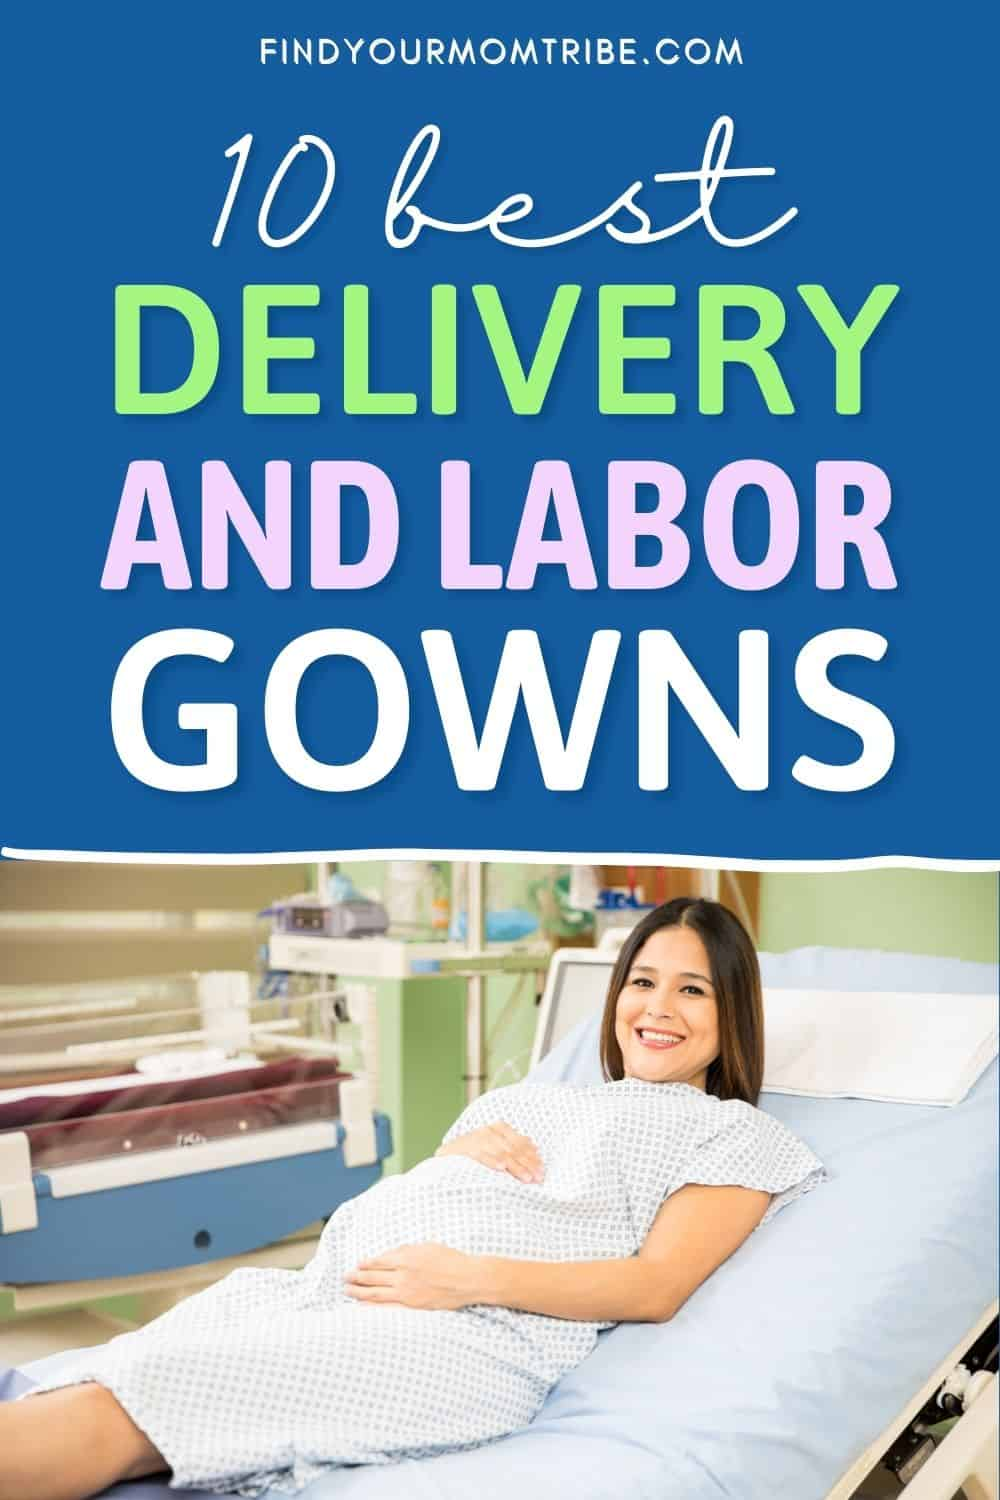 10 Best Delivery And Labor Gowns Pinterest